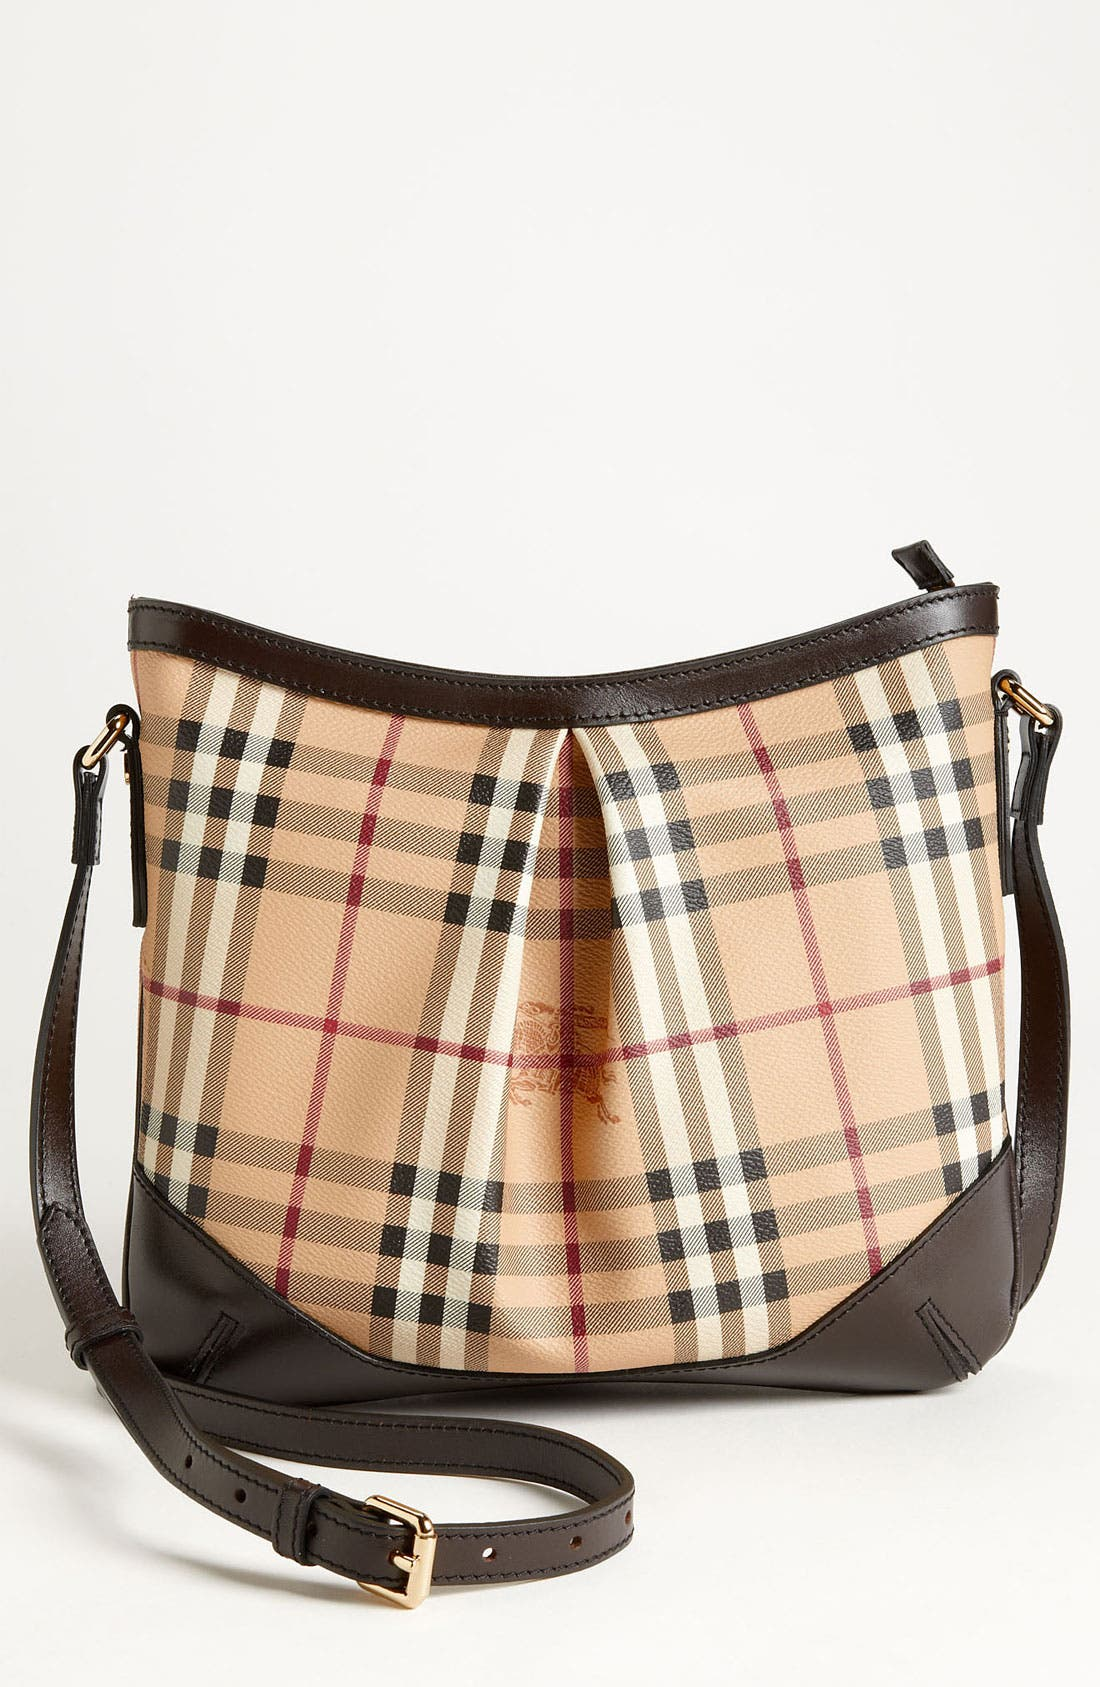 Main Image - Burberry 'Haymarket Check' Crossbody Bag